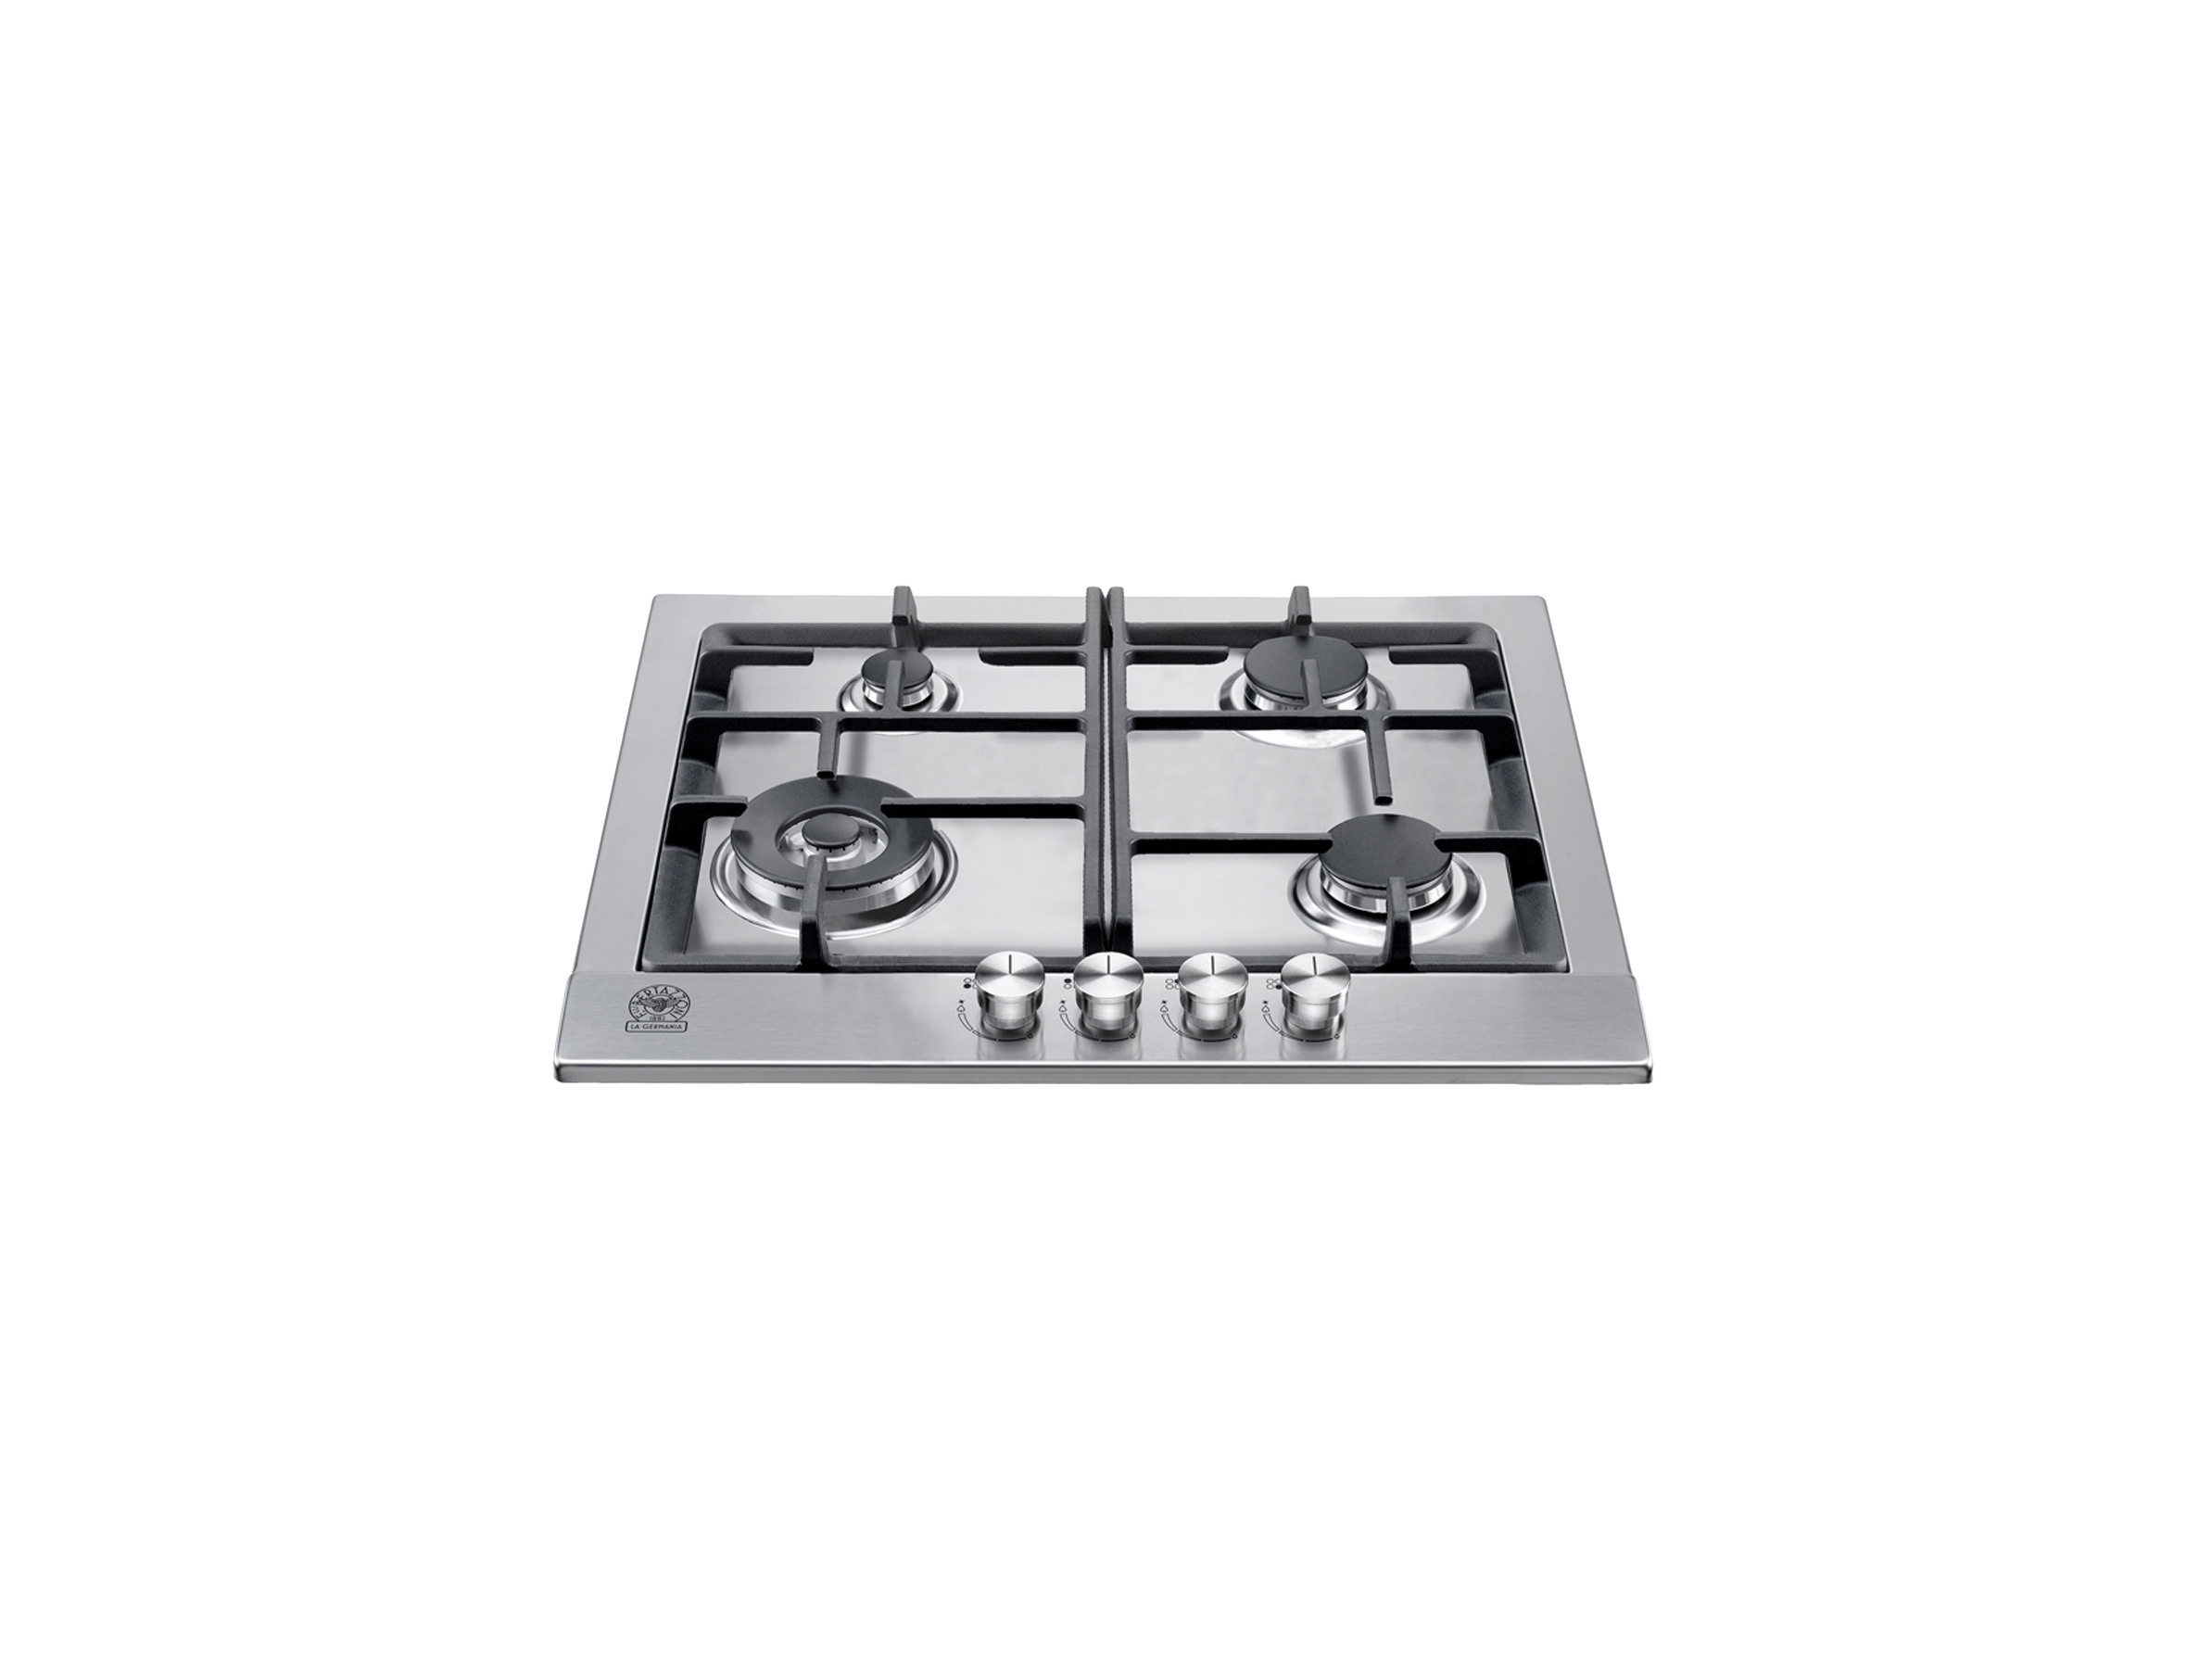 60 4-Burners Squared Pan Support | Bertazzoni La Germania - Stainless